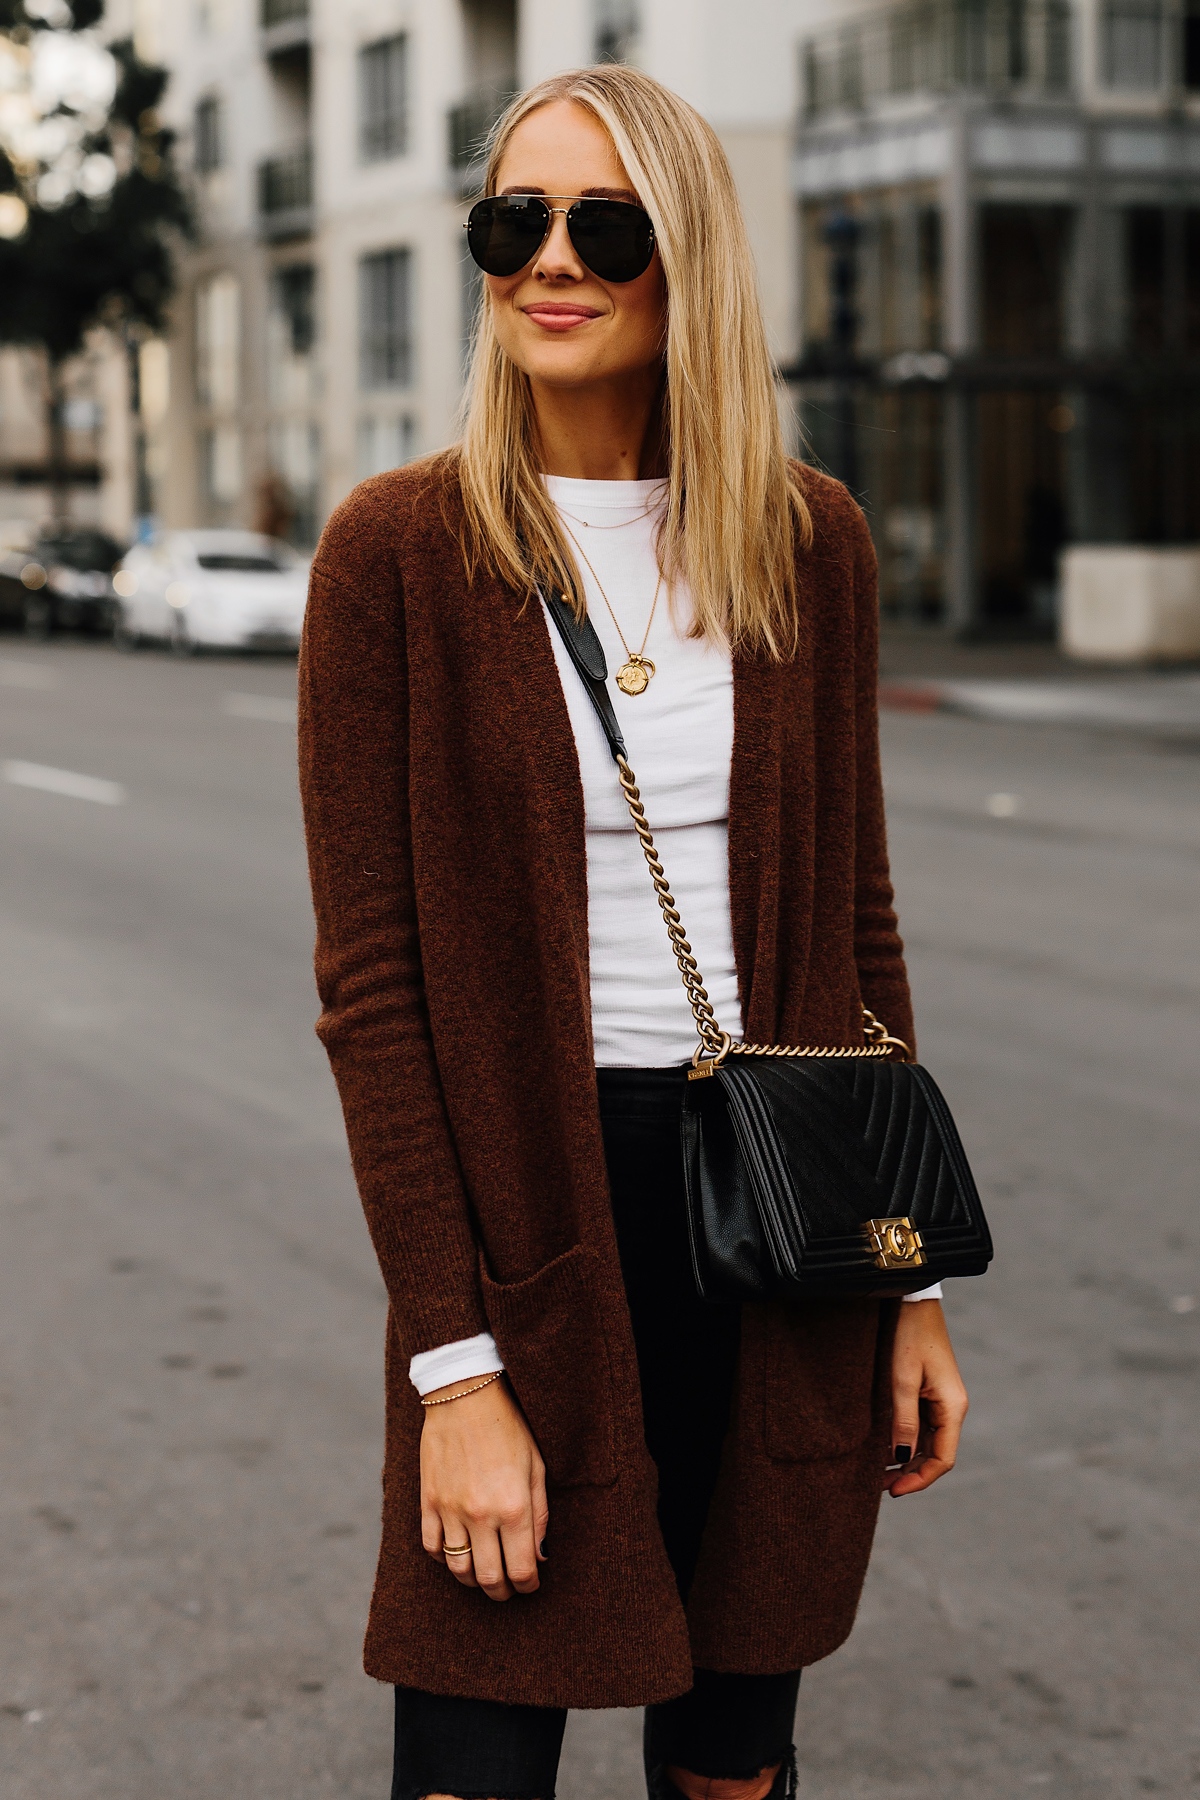 71fb223640d6 Blonde Woman Wearing Madewell Brown Long Cardigan White Top Black Ripped  Skinny Jeans Chanel Black Boy